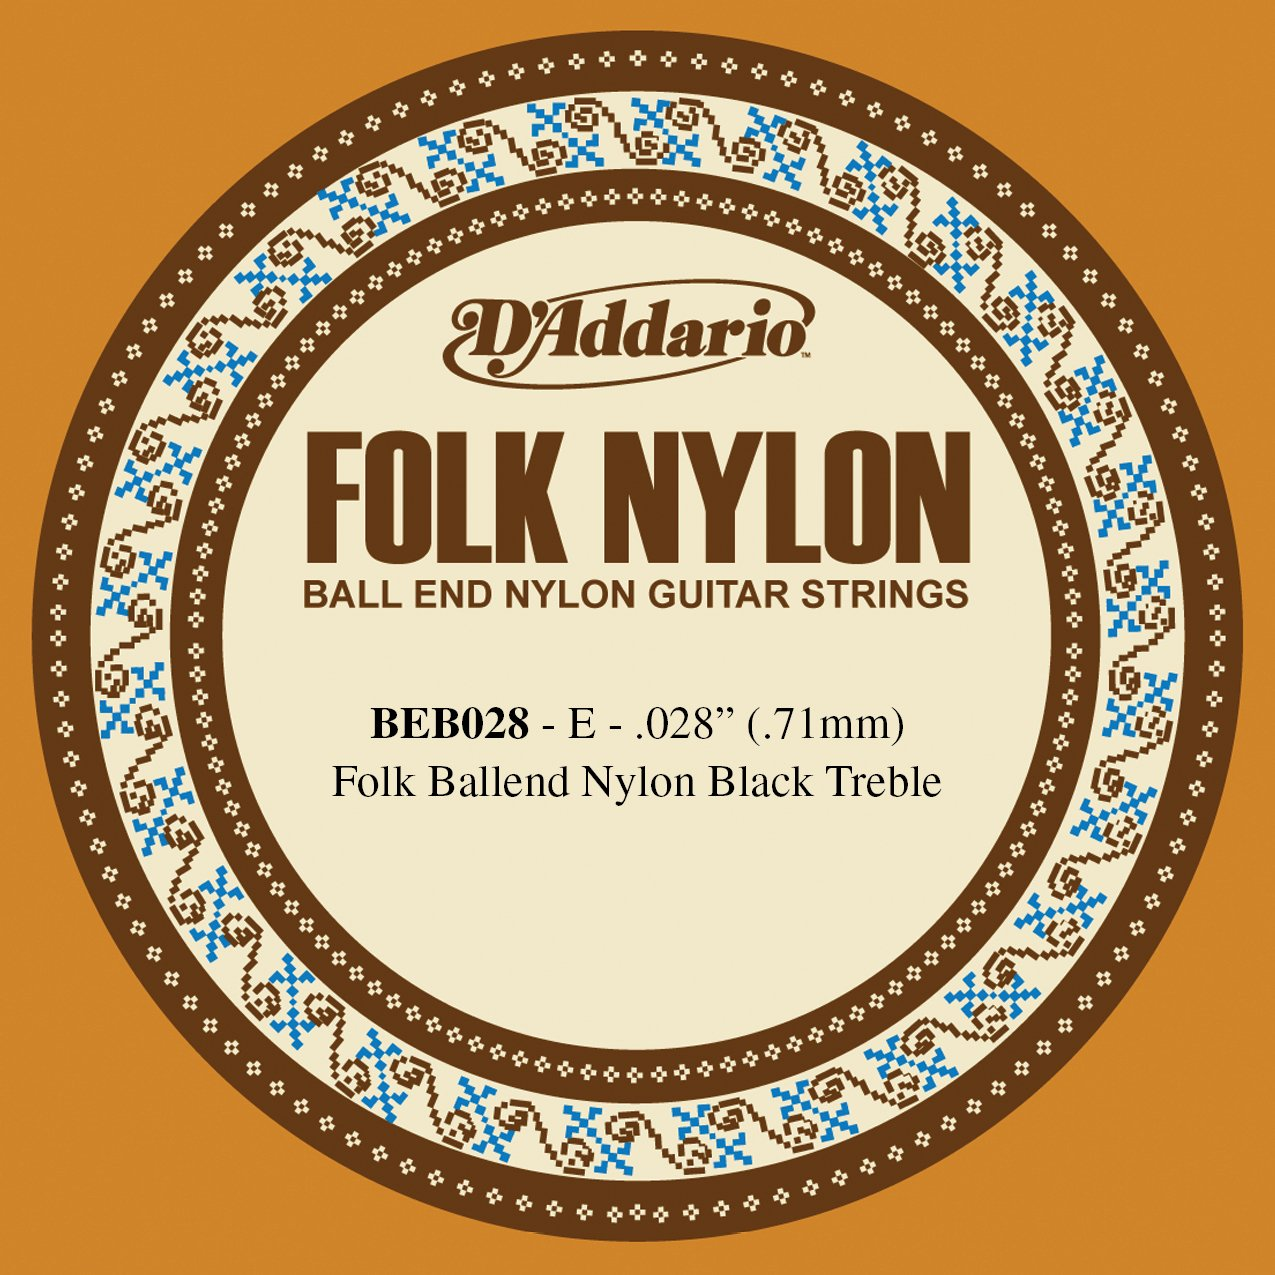 D'Addario BEB028 Folk Nylon Guitar Single String, Black Nylon, Ball End, .028 D' Addario